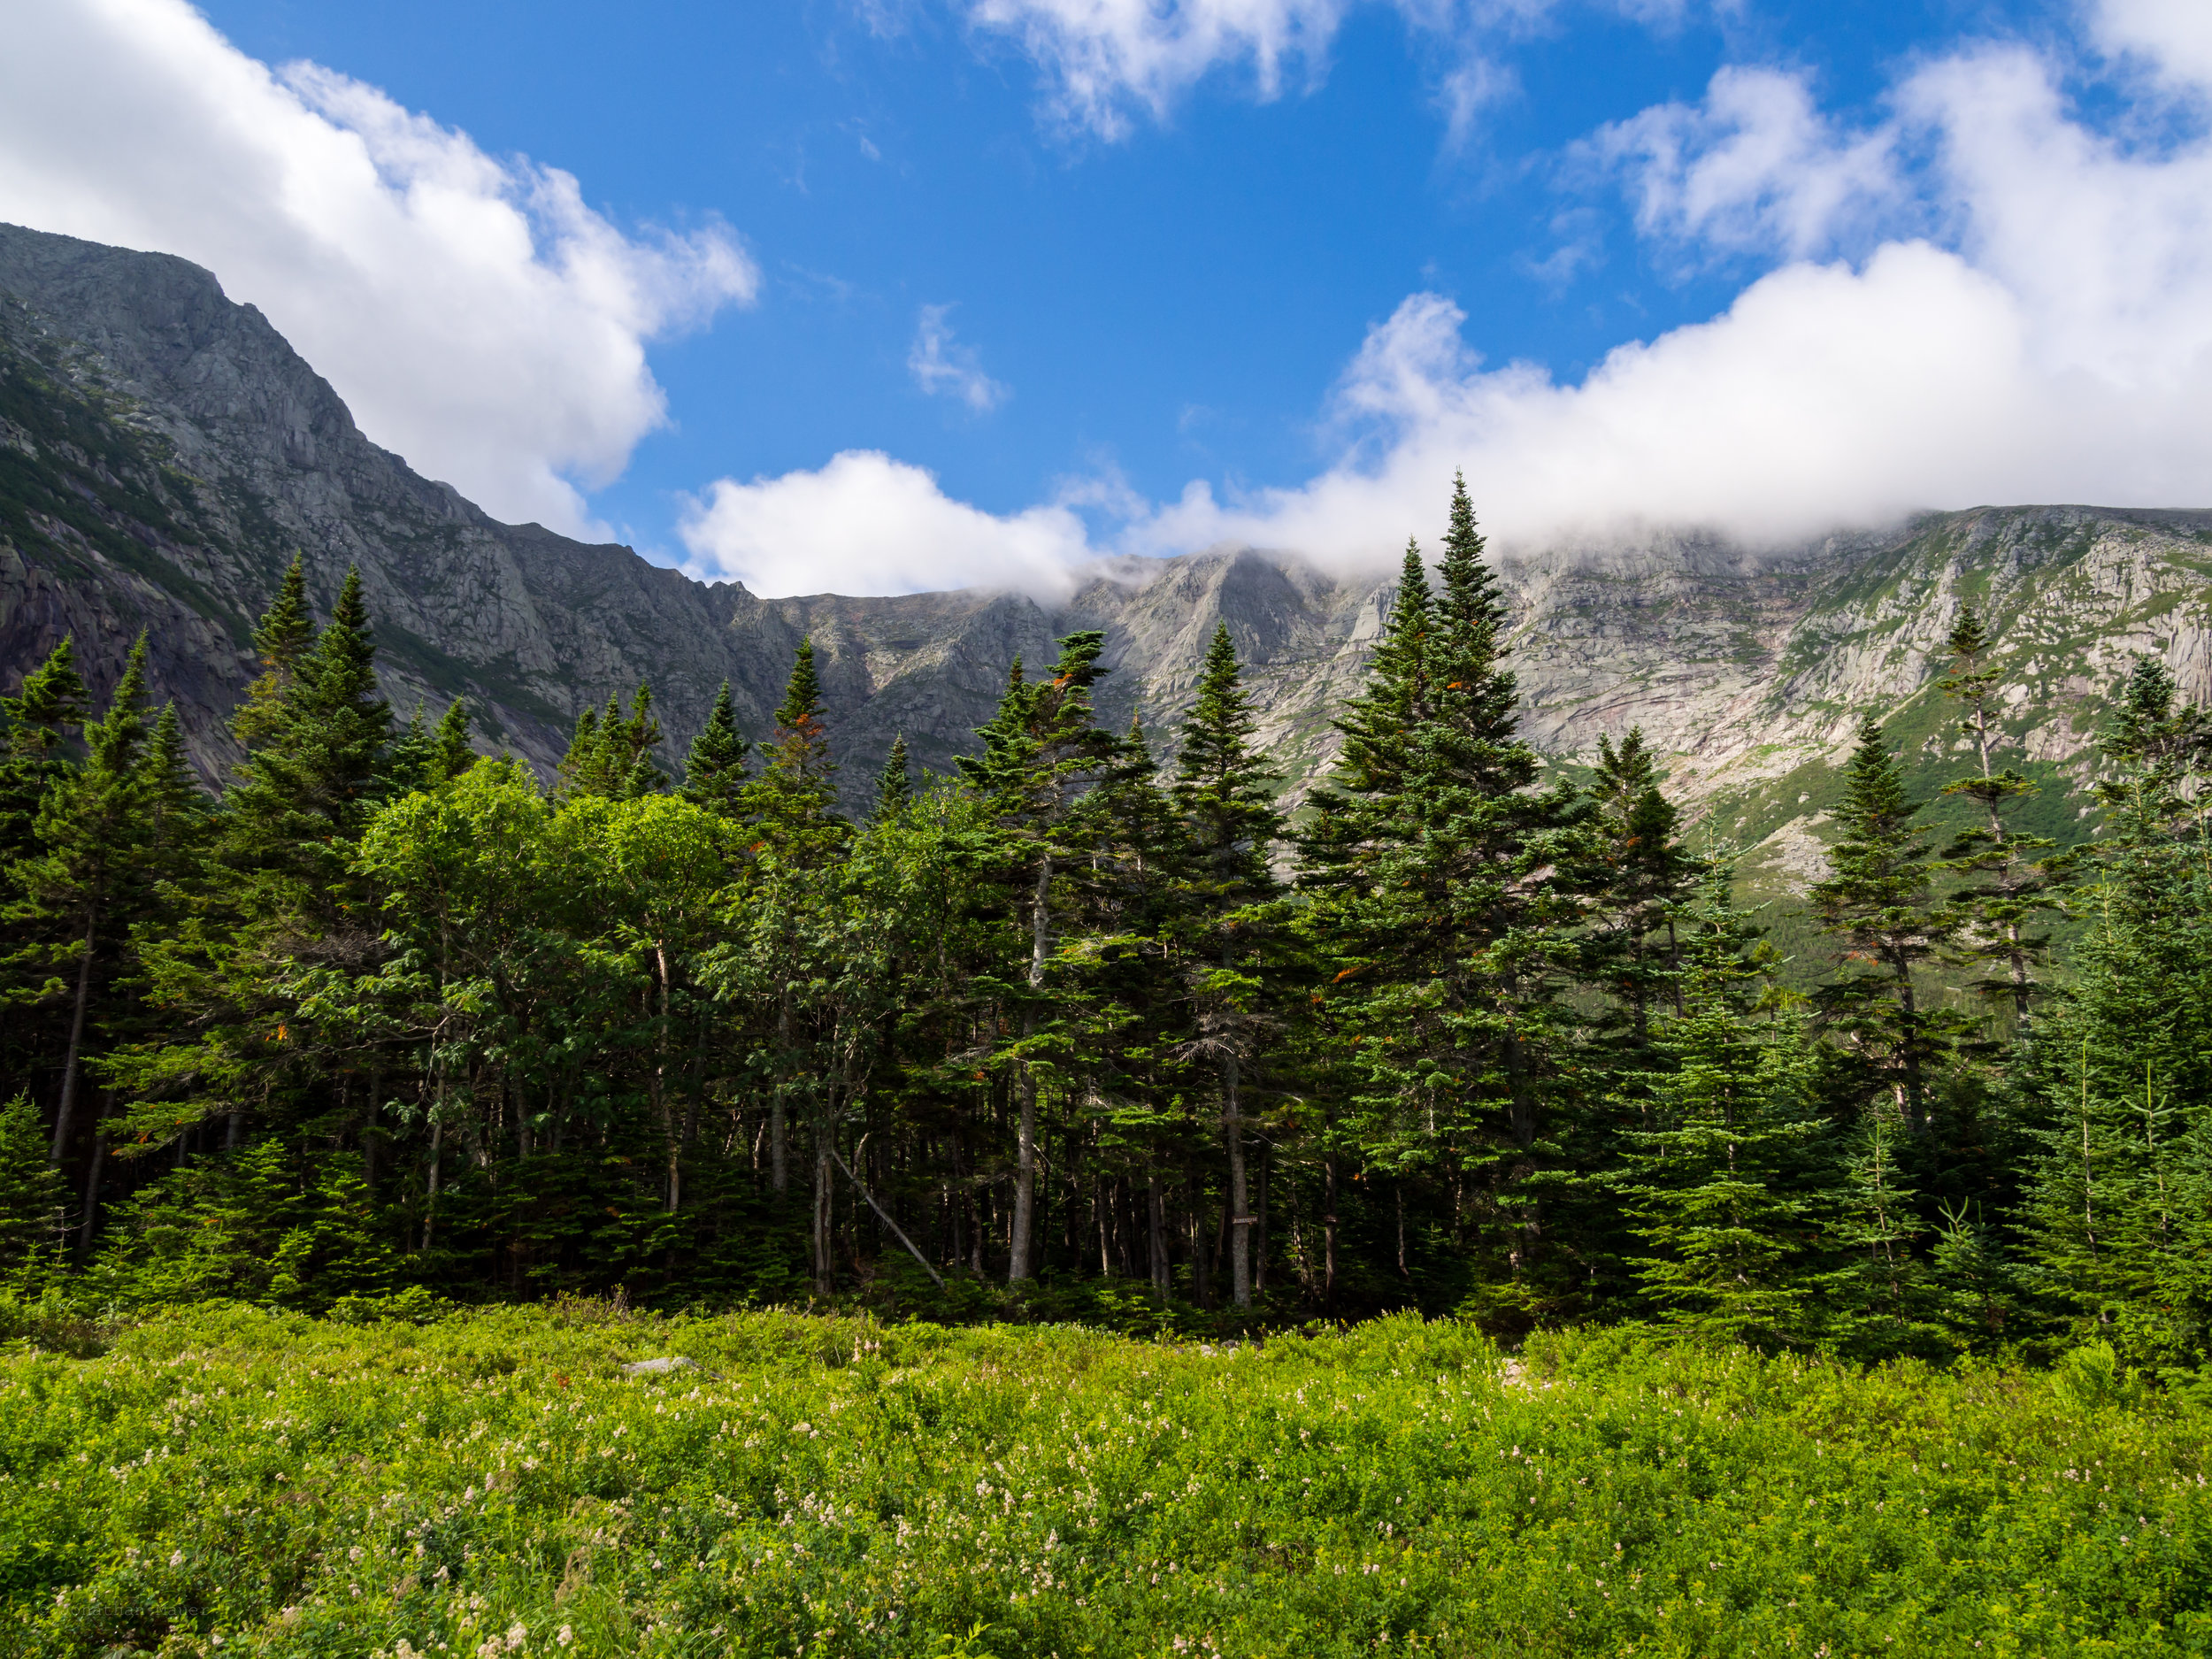 View of the Knife's Edge from Chimney Pond campground.